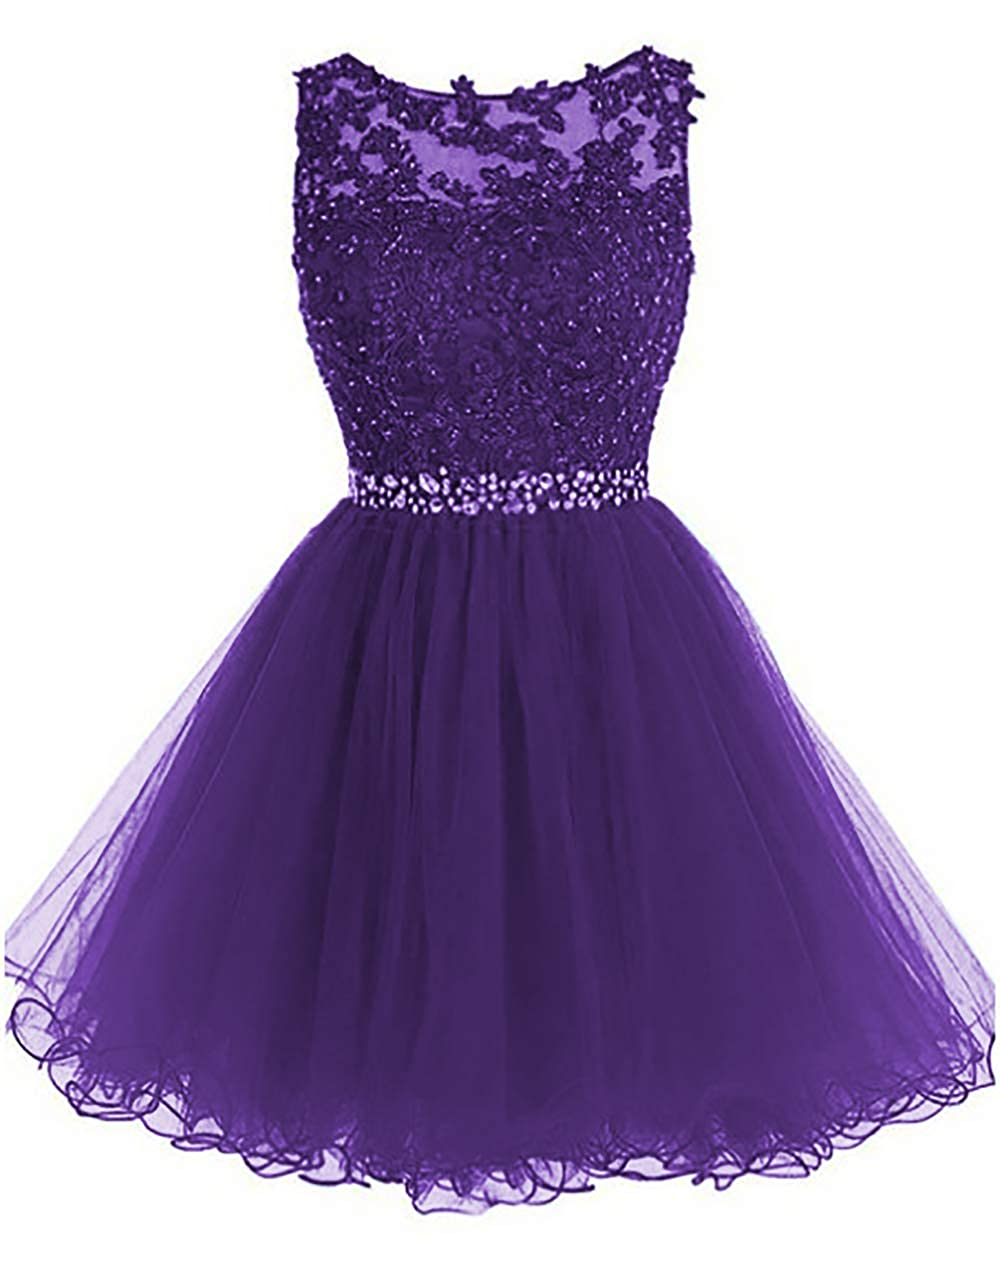 Purple IVYPRECIOUS Women's Beaded Lace Short Homecoming Dress A Line Tulle Party Dress